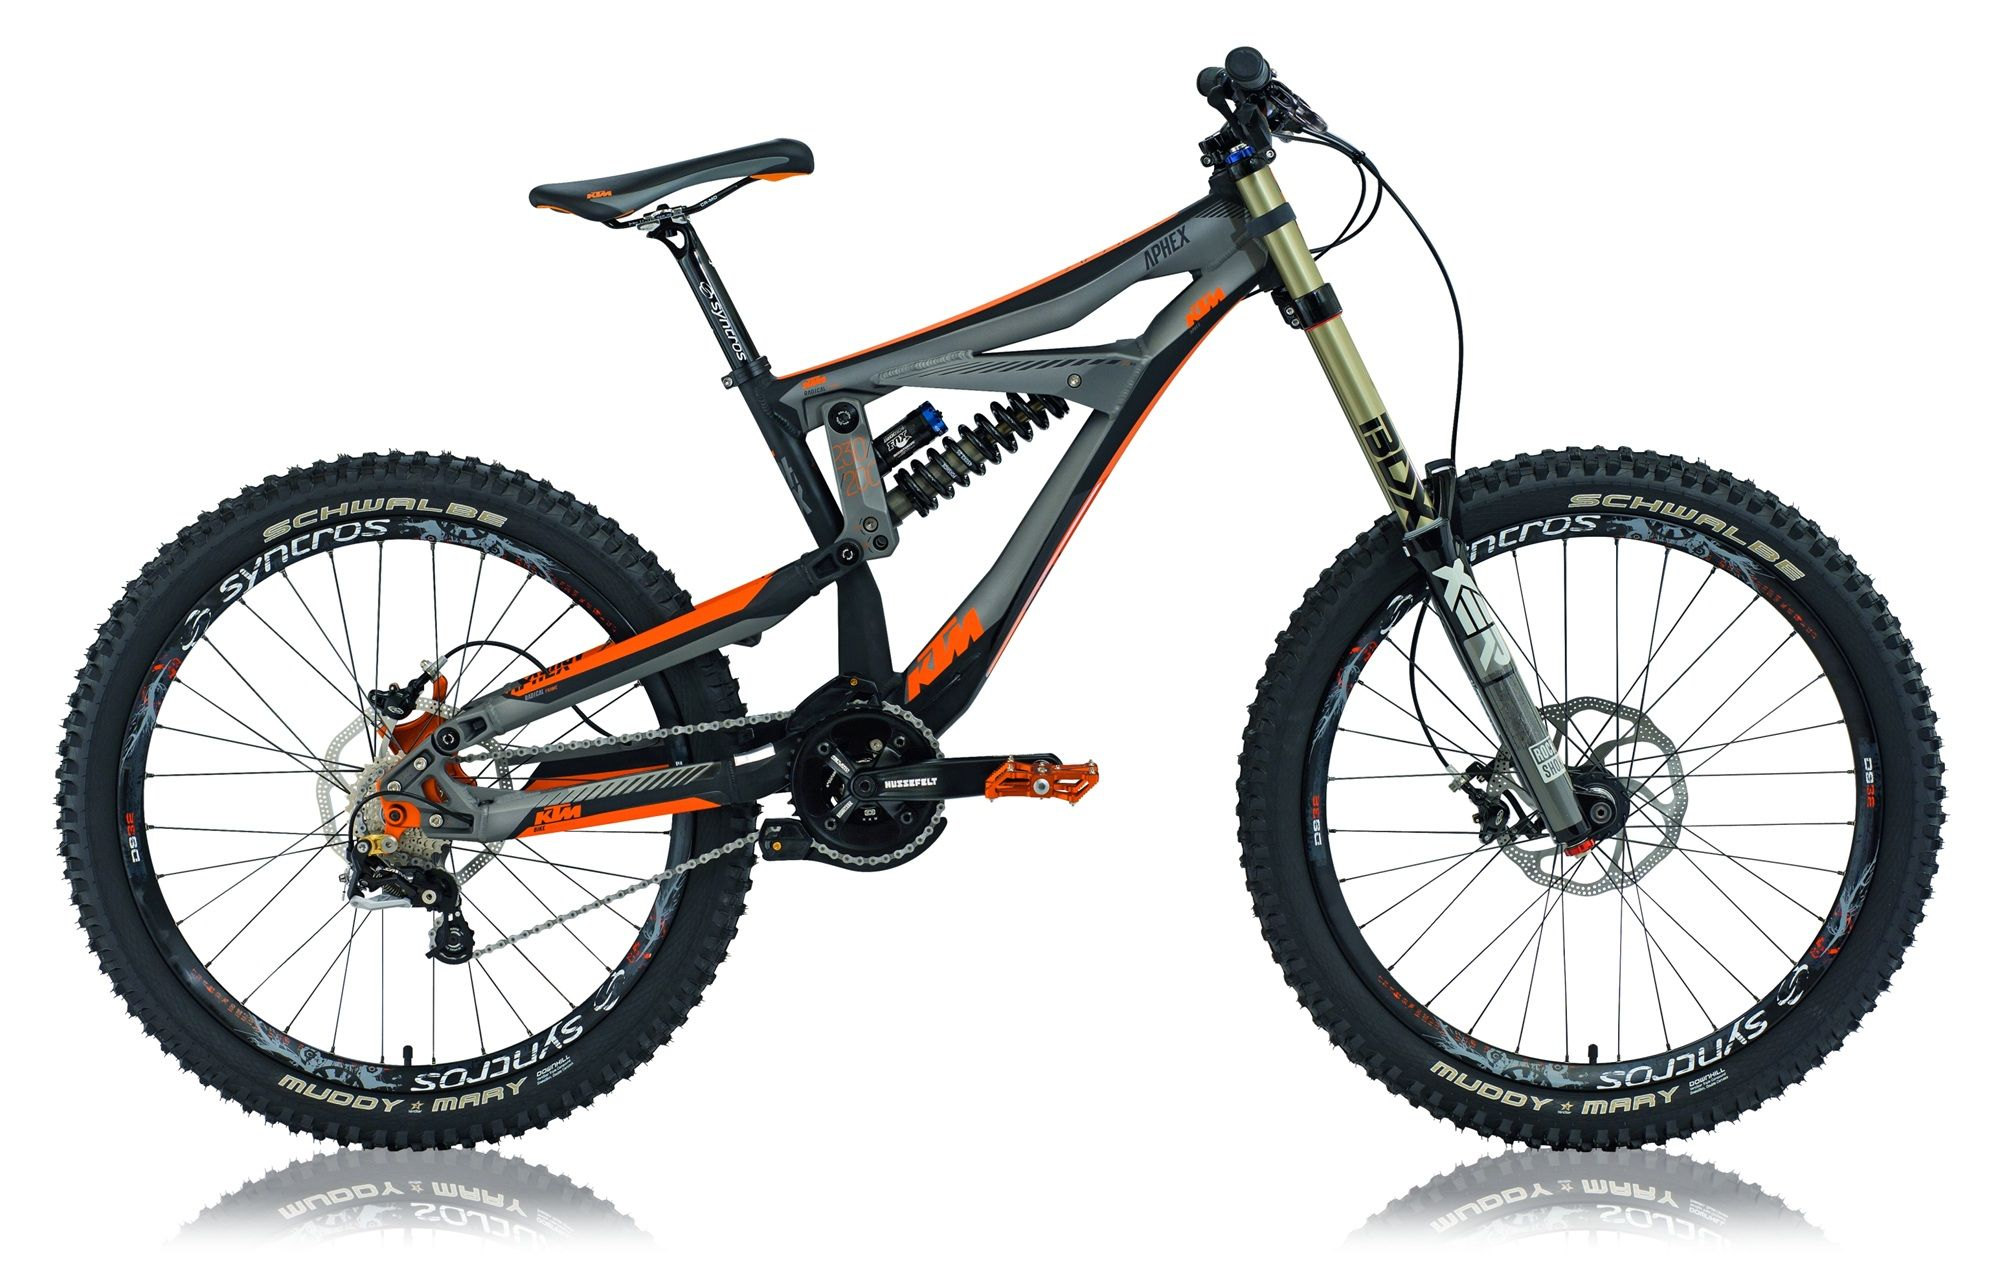 Ktm Now Available In Store Including This Ktm Phinx Prime 2012